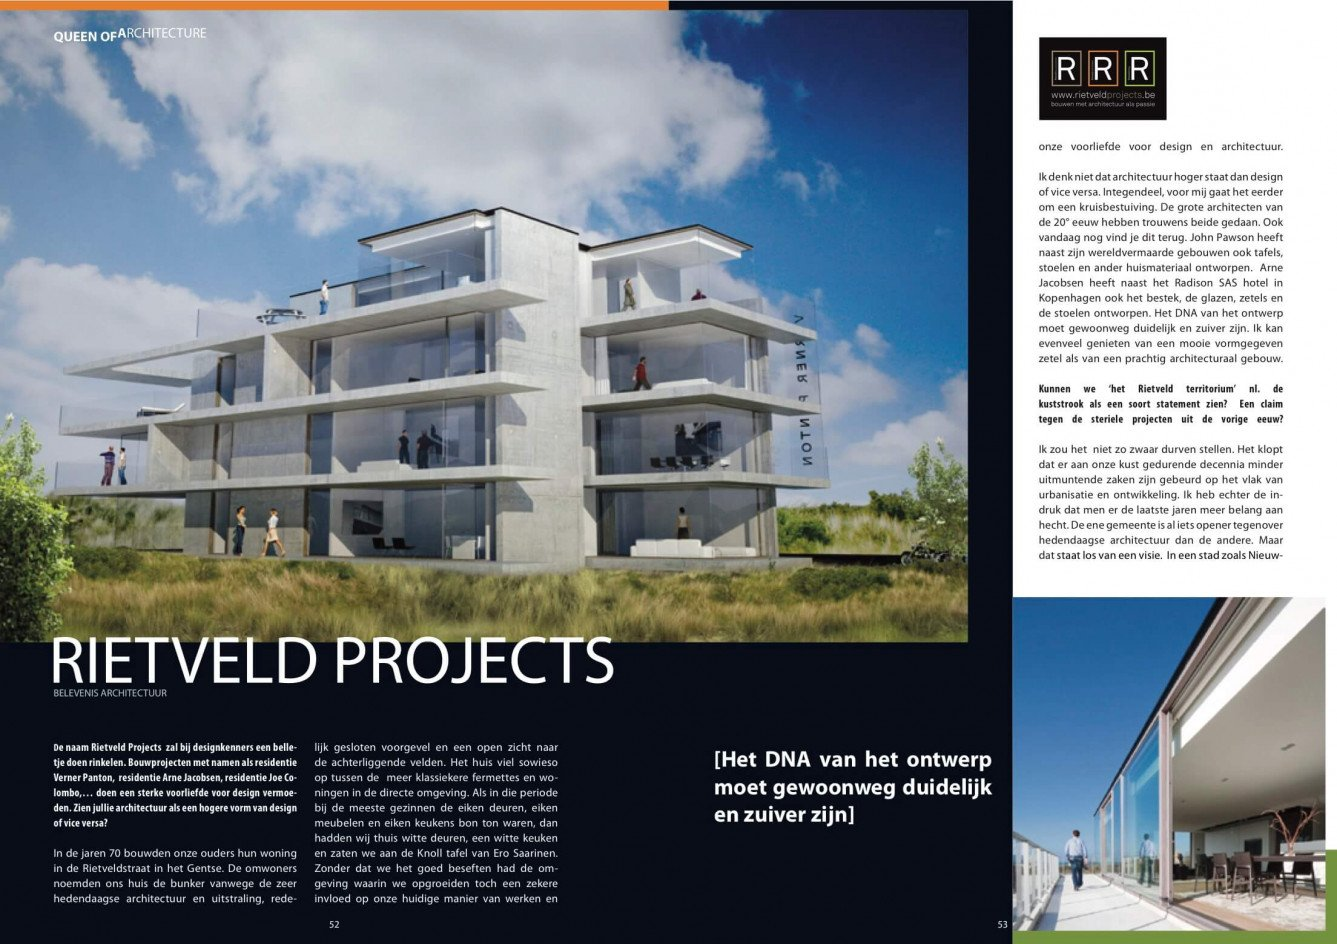 Magazine Queen of Flowers - Rietveldprojects, Queen of Architecture 1.jpg